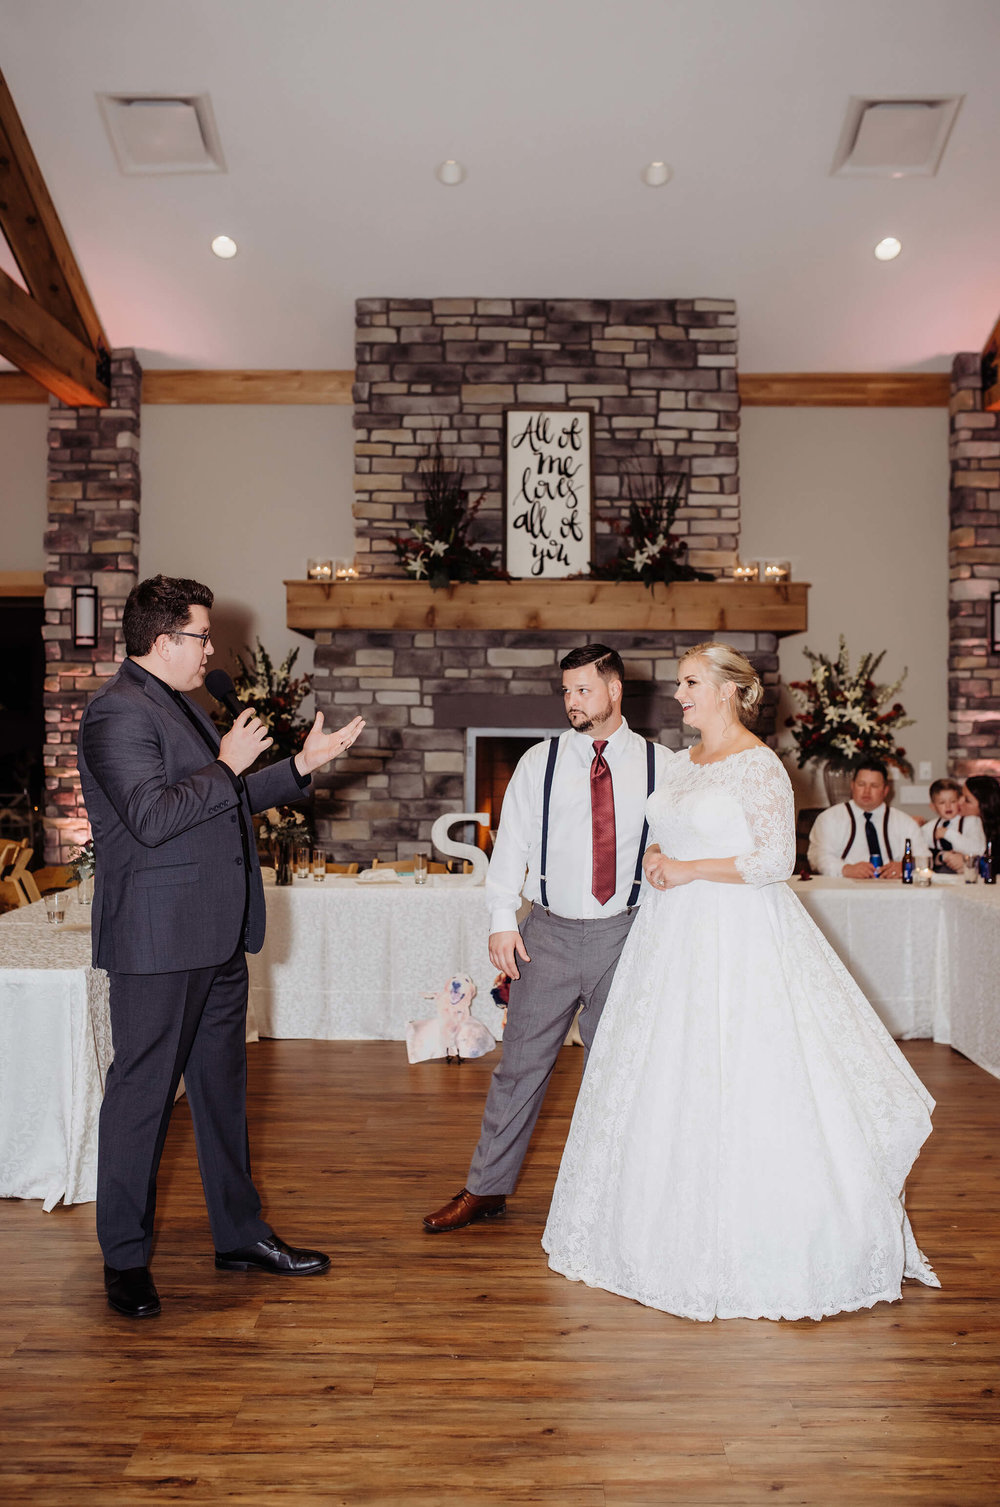 Fluid transitions between elements at a wedding are KEY